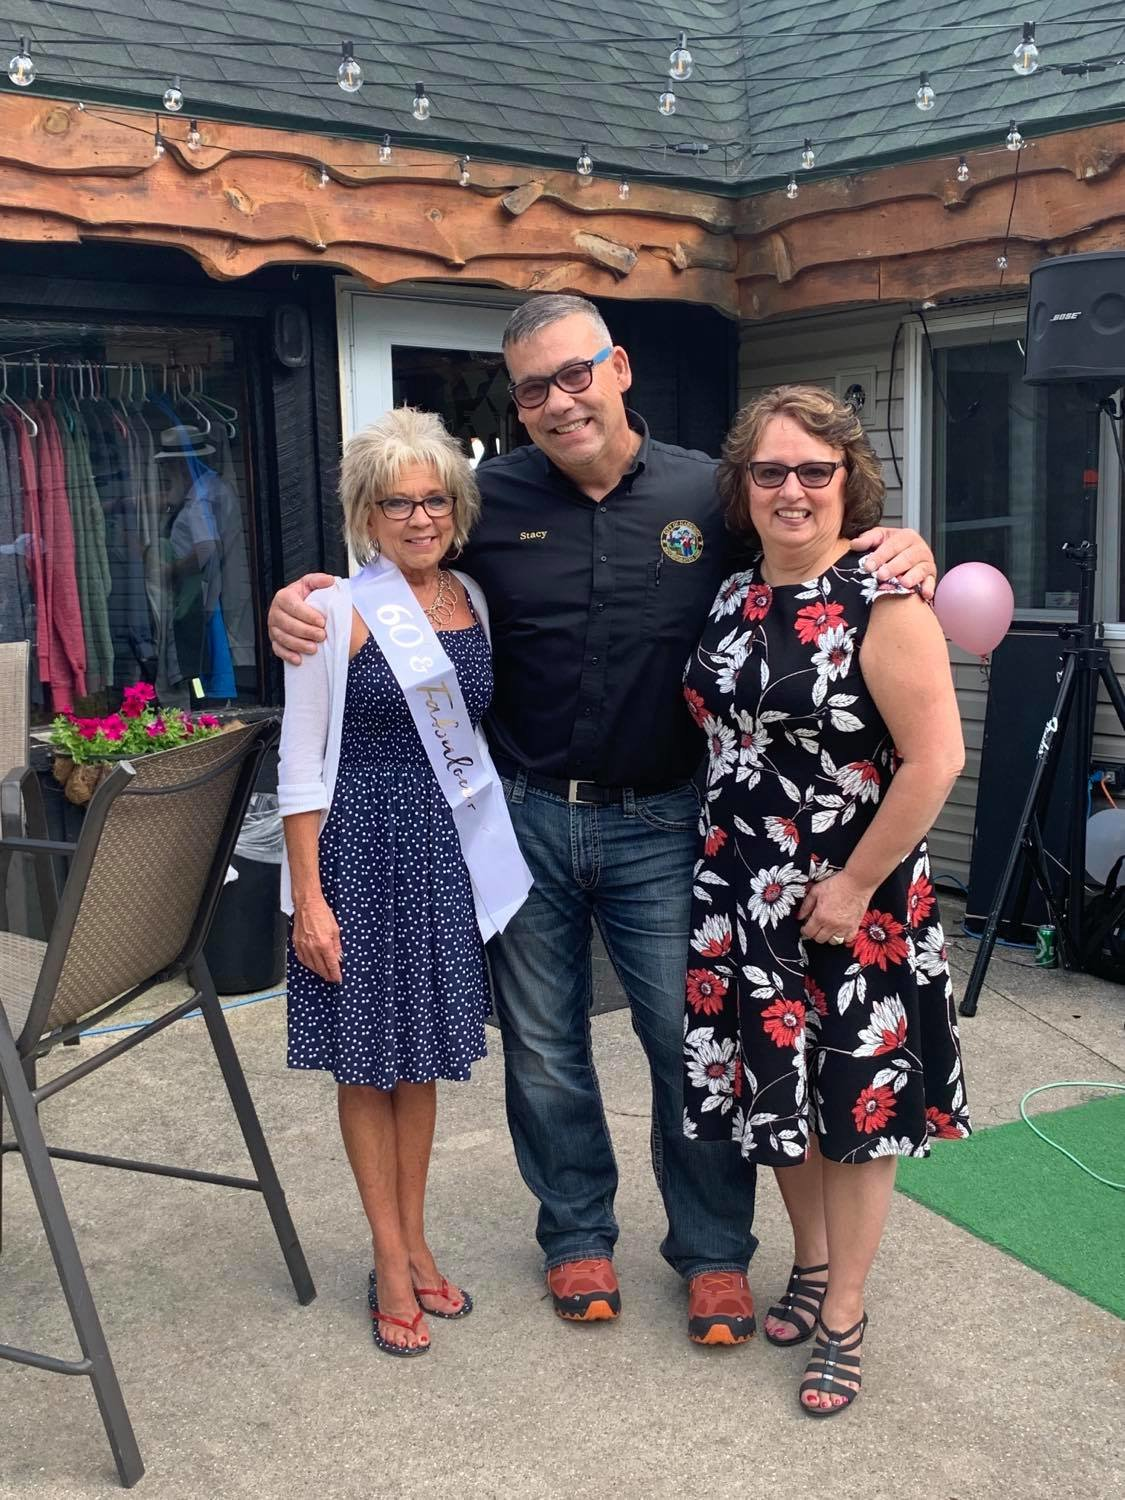 Sharon Hawkins (left) with Mayor Stocking and City Manager Tracey Connelly at her retirement/birthday celebration at Tamaracks Golf Course.